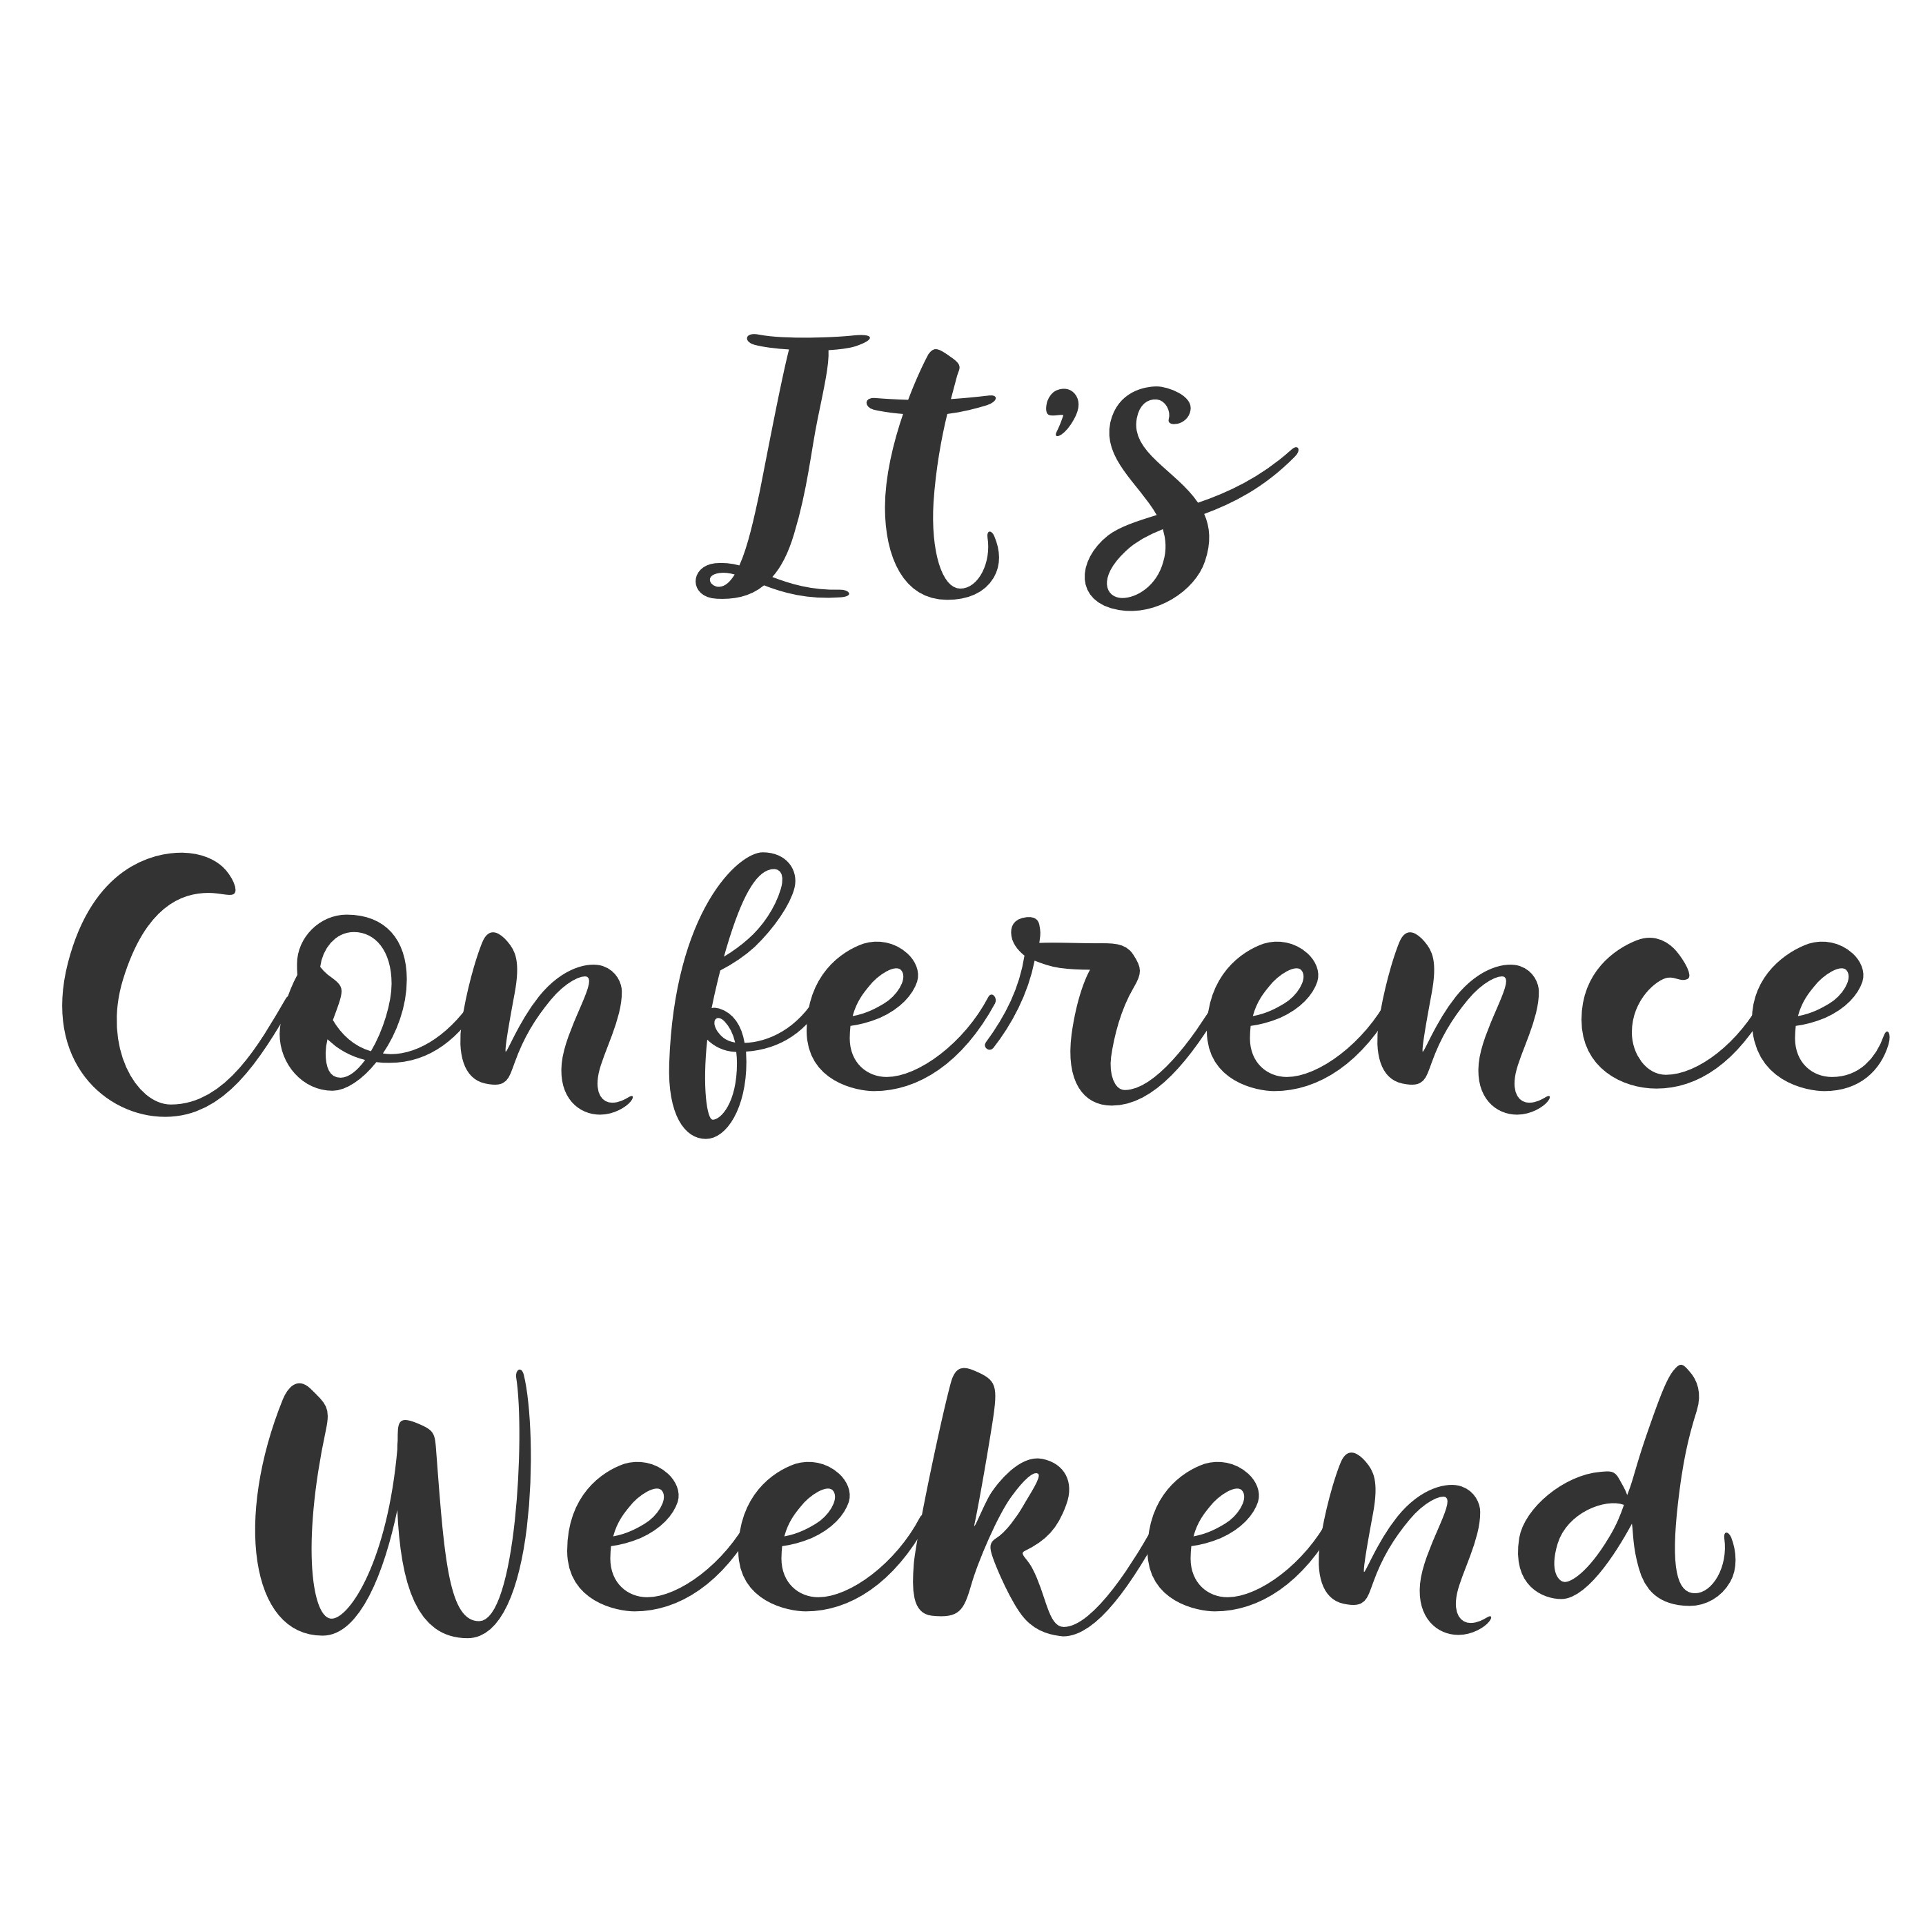 Conference Weekend